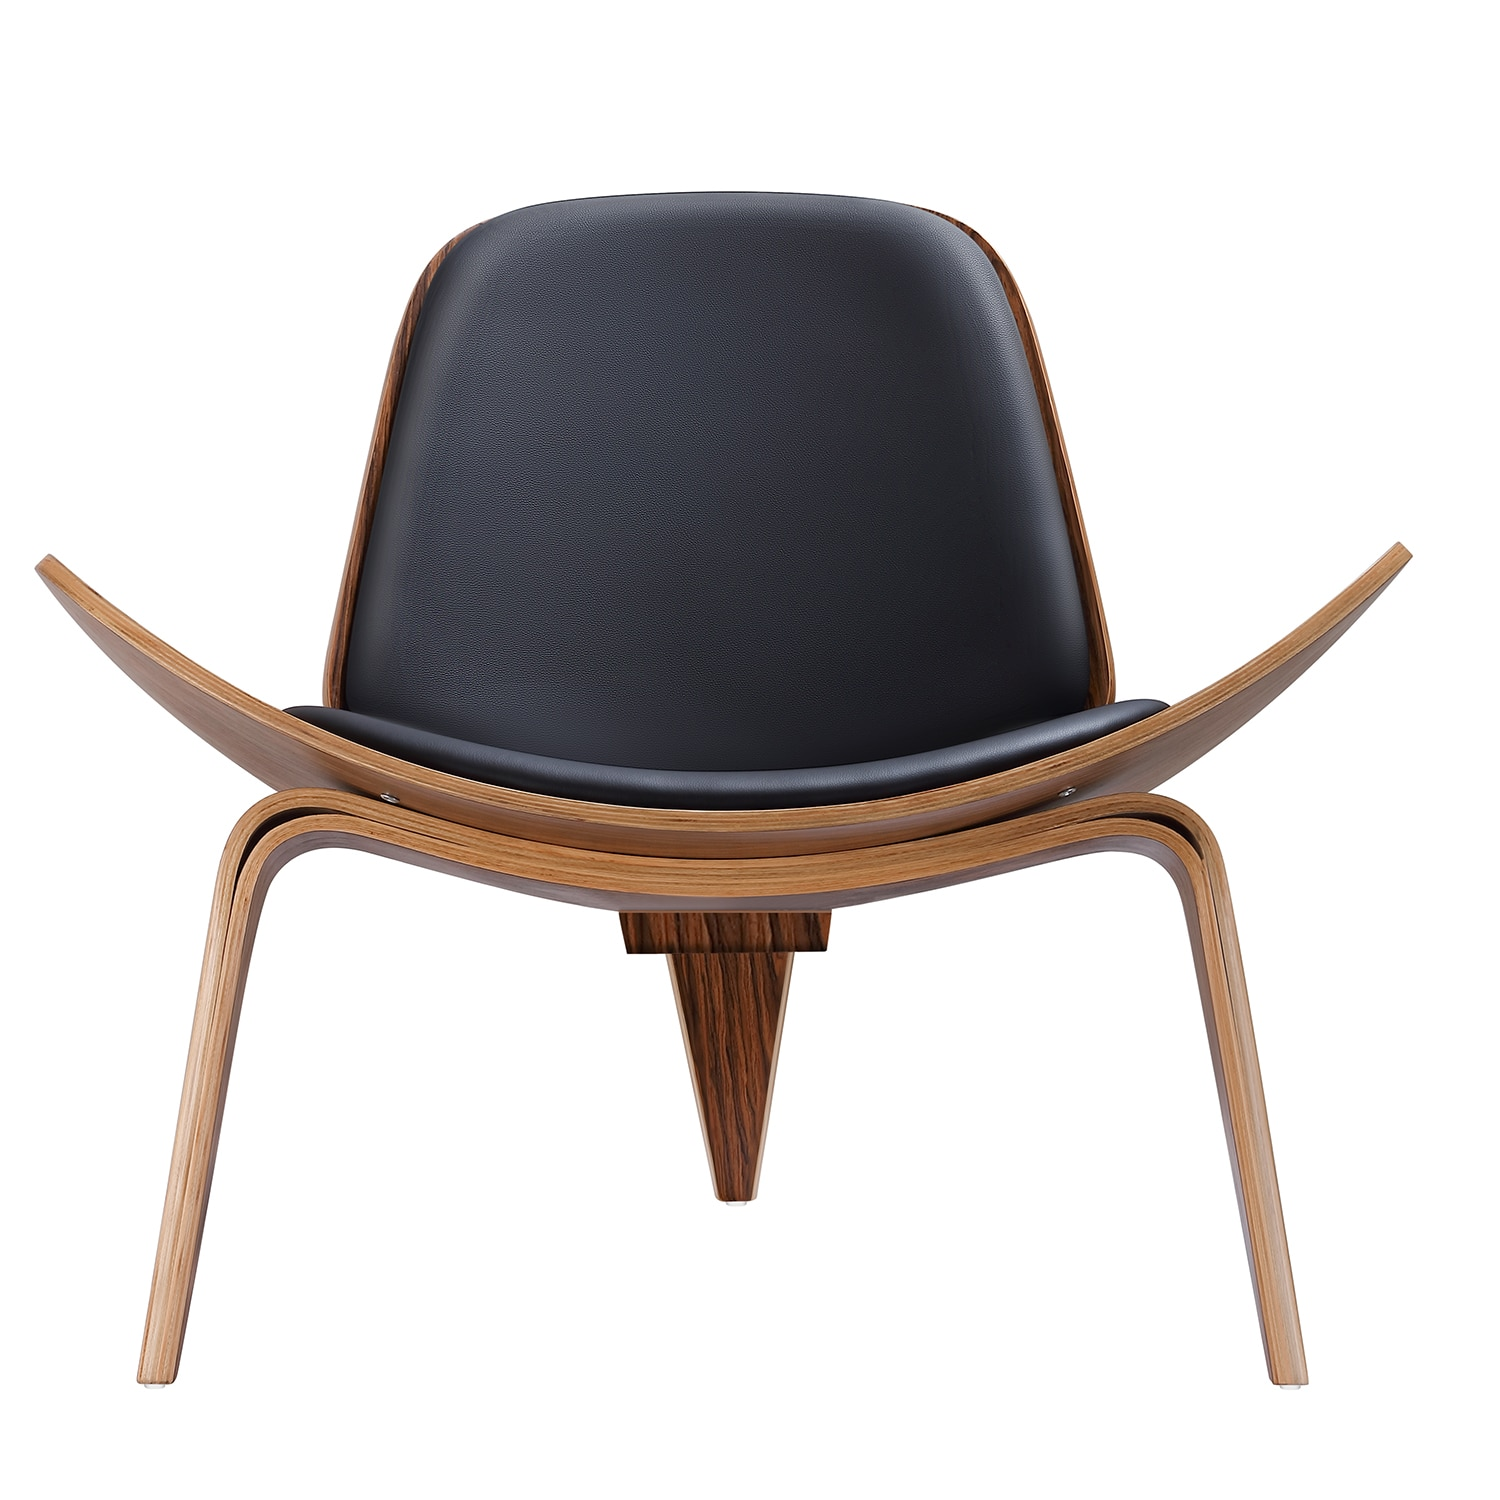 Hd08bca8c6c204de4bc5e4d73946b3e41s - Design Furniture Bentwood Chair Hands Wegner Replica Lounge Chair with PU Leather Seat Comfort Cushion Coffee Chair Office Chair